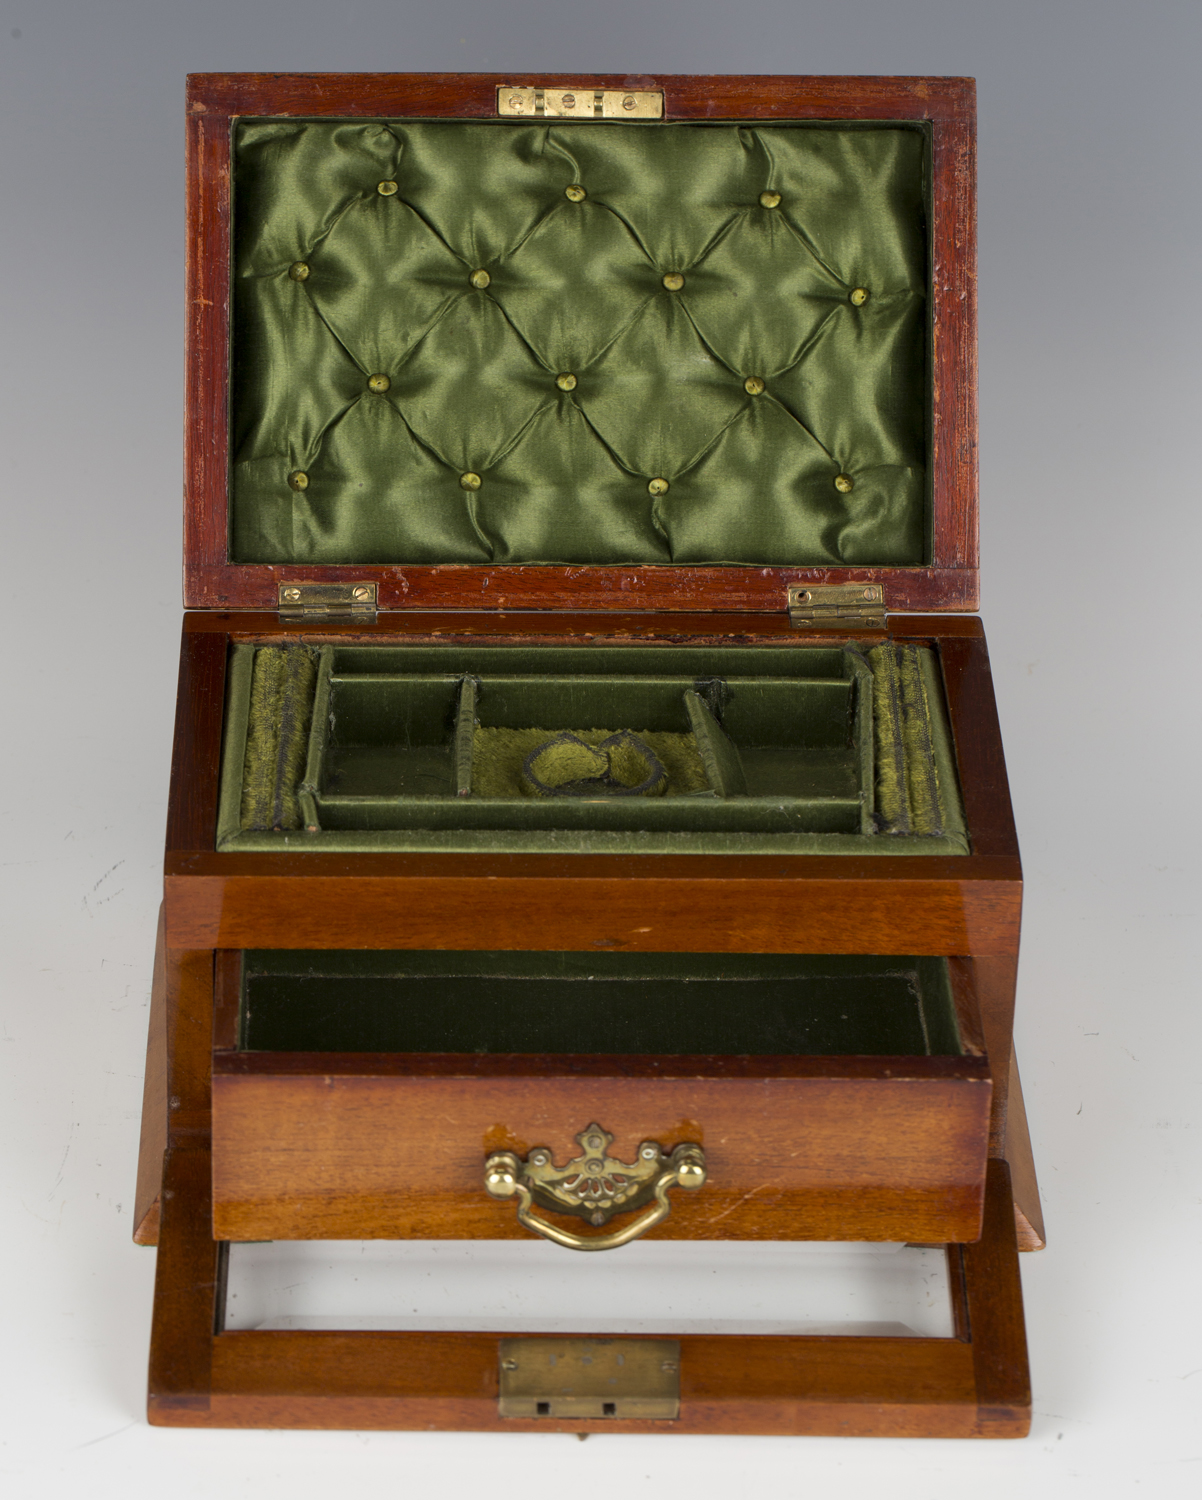 An Edwardian satin mahogany jewellery casket, the hinged lid and glazed fall-front enclosing a - Image 3 of 3